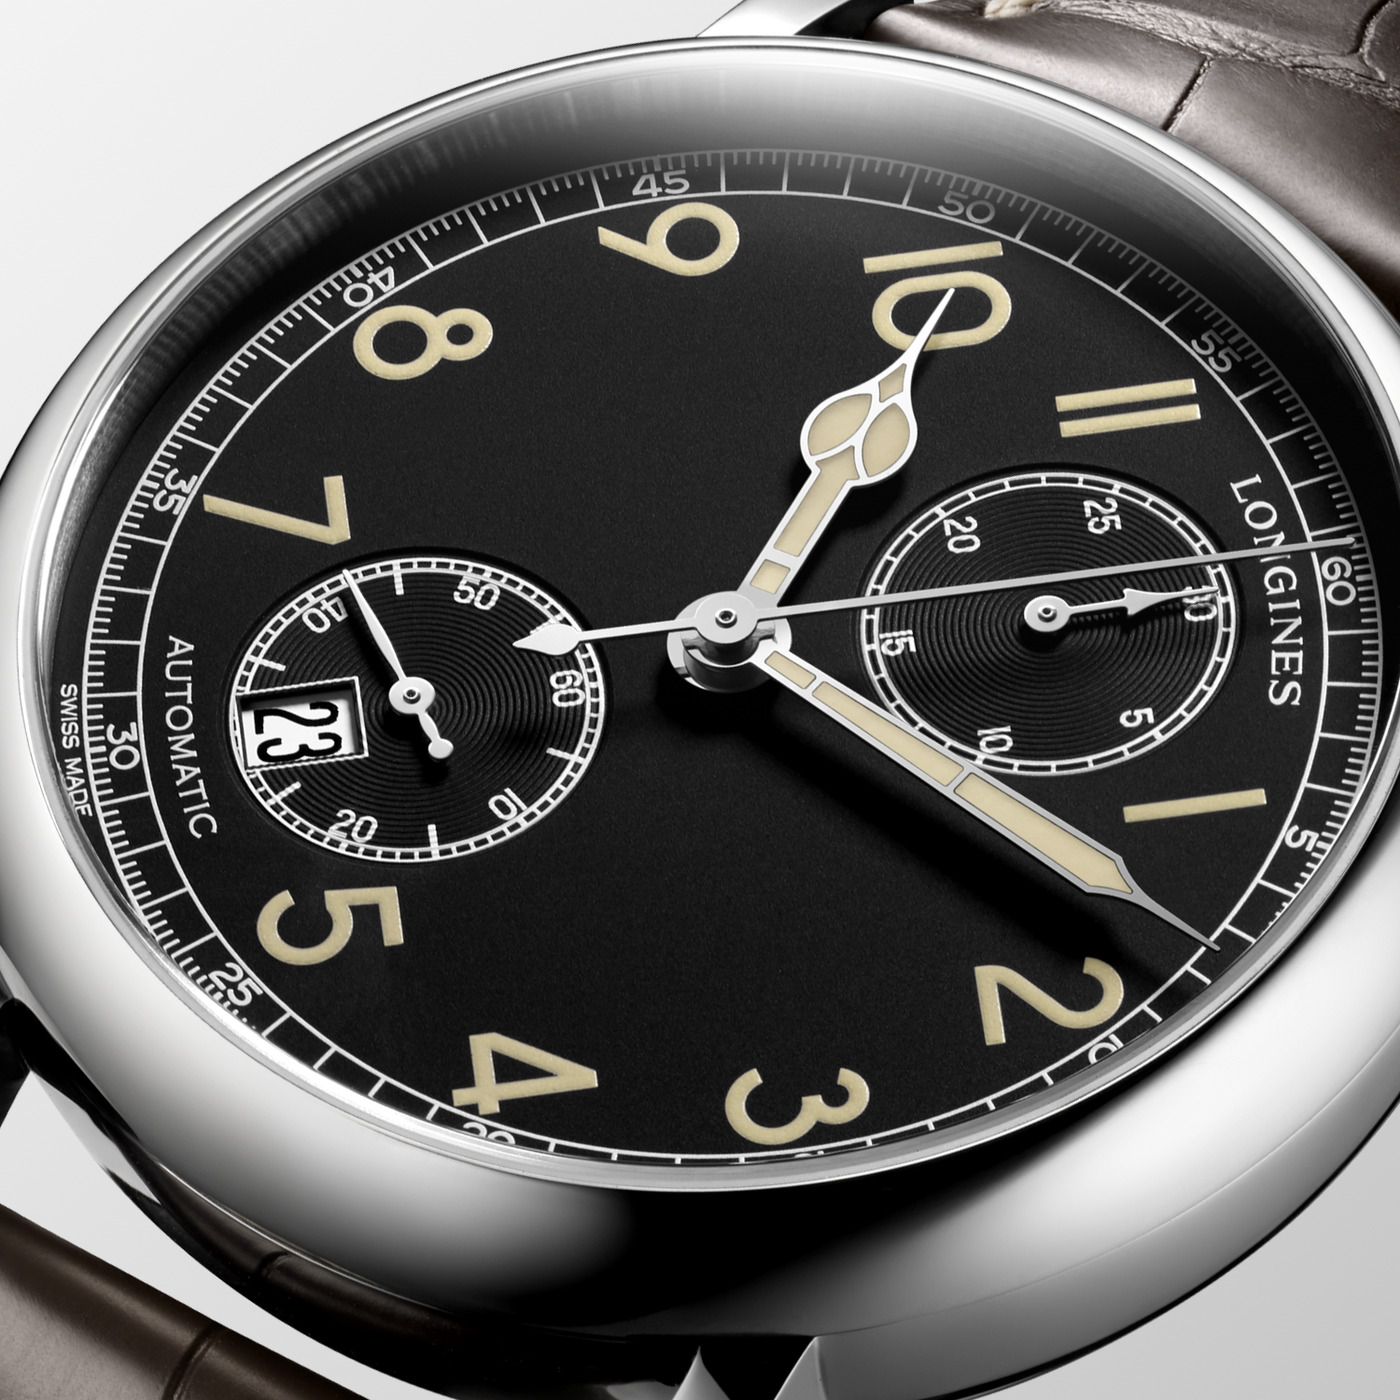 Longines The Longines Avigation Watch Type A-7 1935 Watch 2